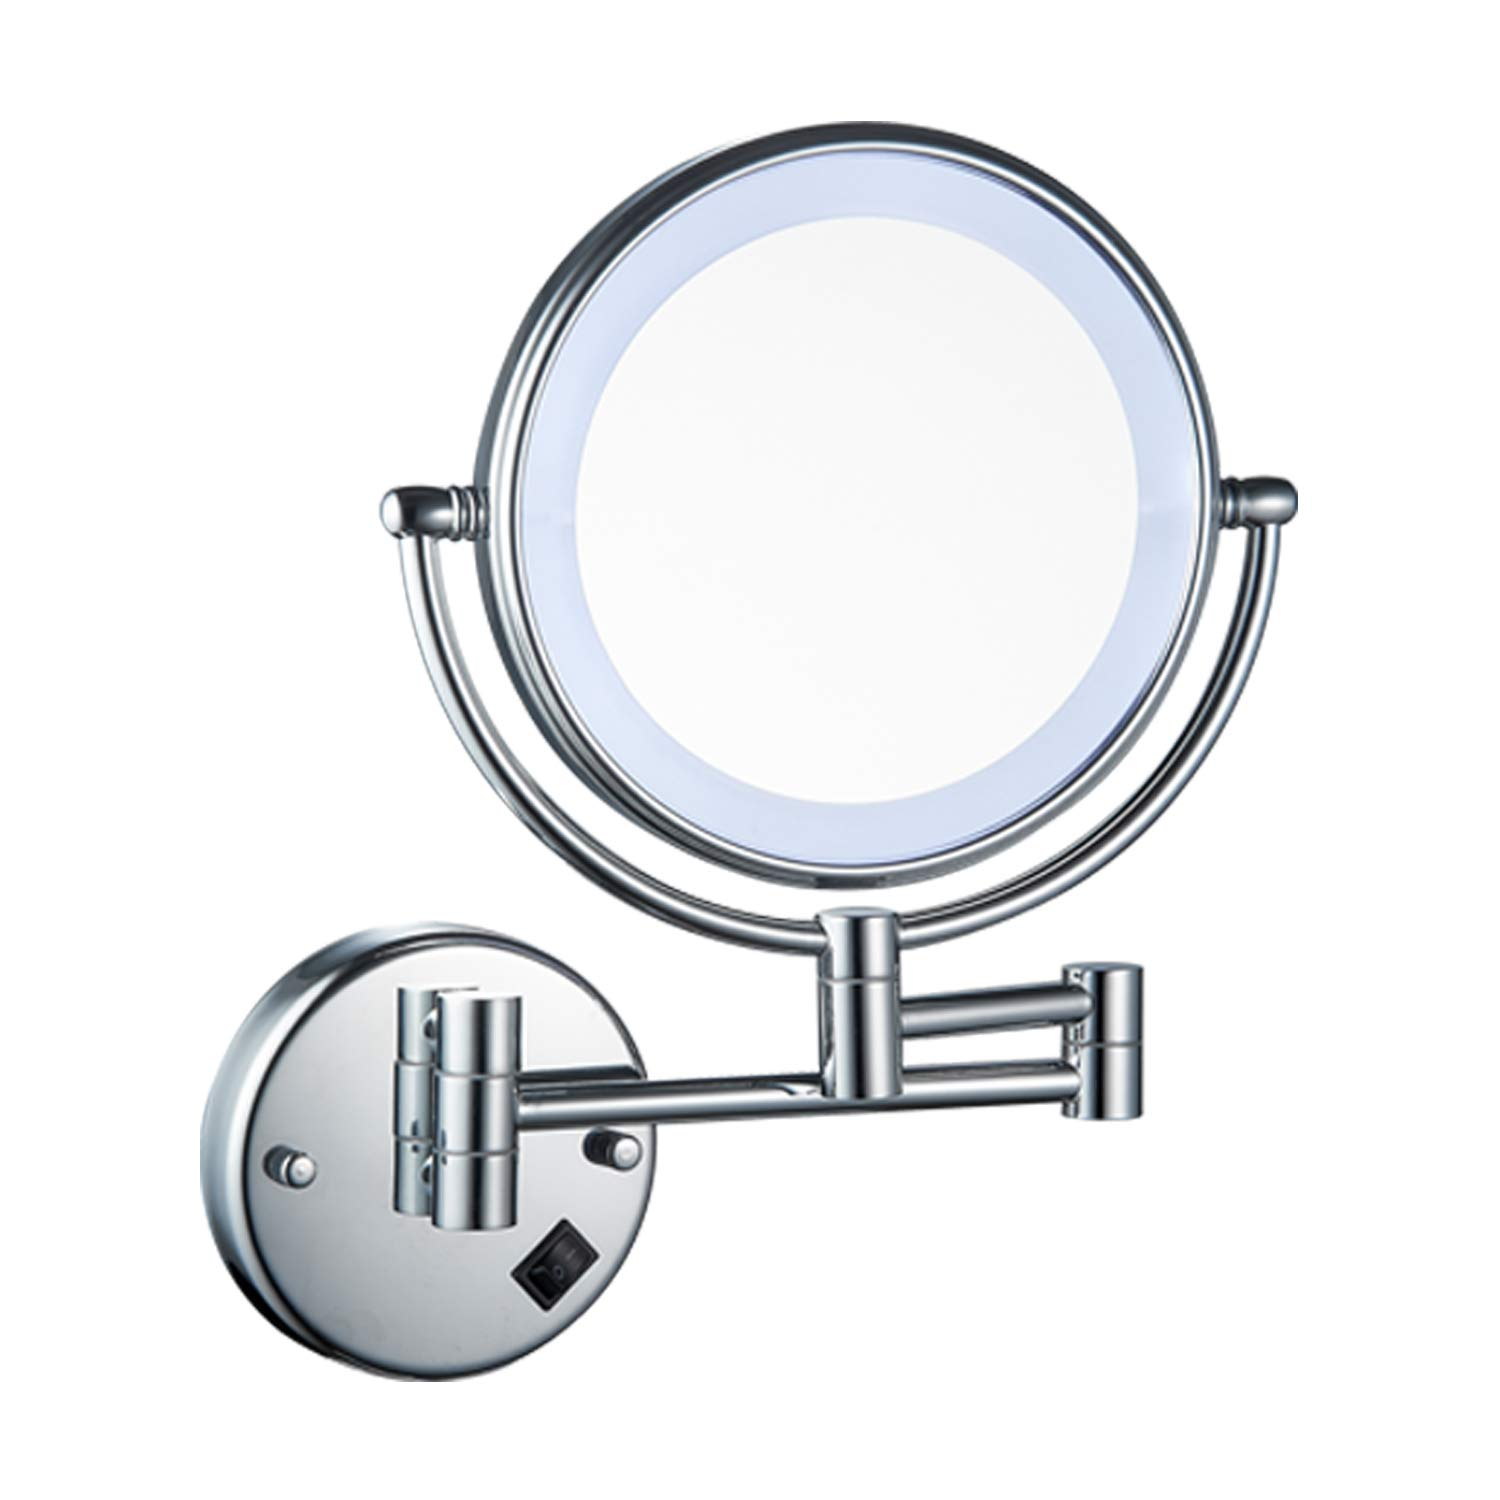 10x Magnification, Chrome Charmer LED Lighted Wall Mounted Makeup Mirror with 10x Magnification,Chrome Finish,